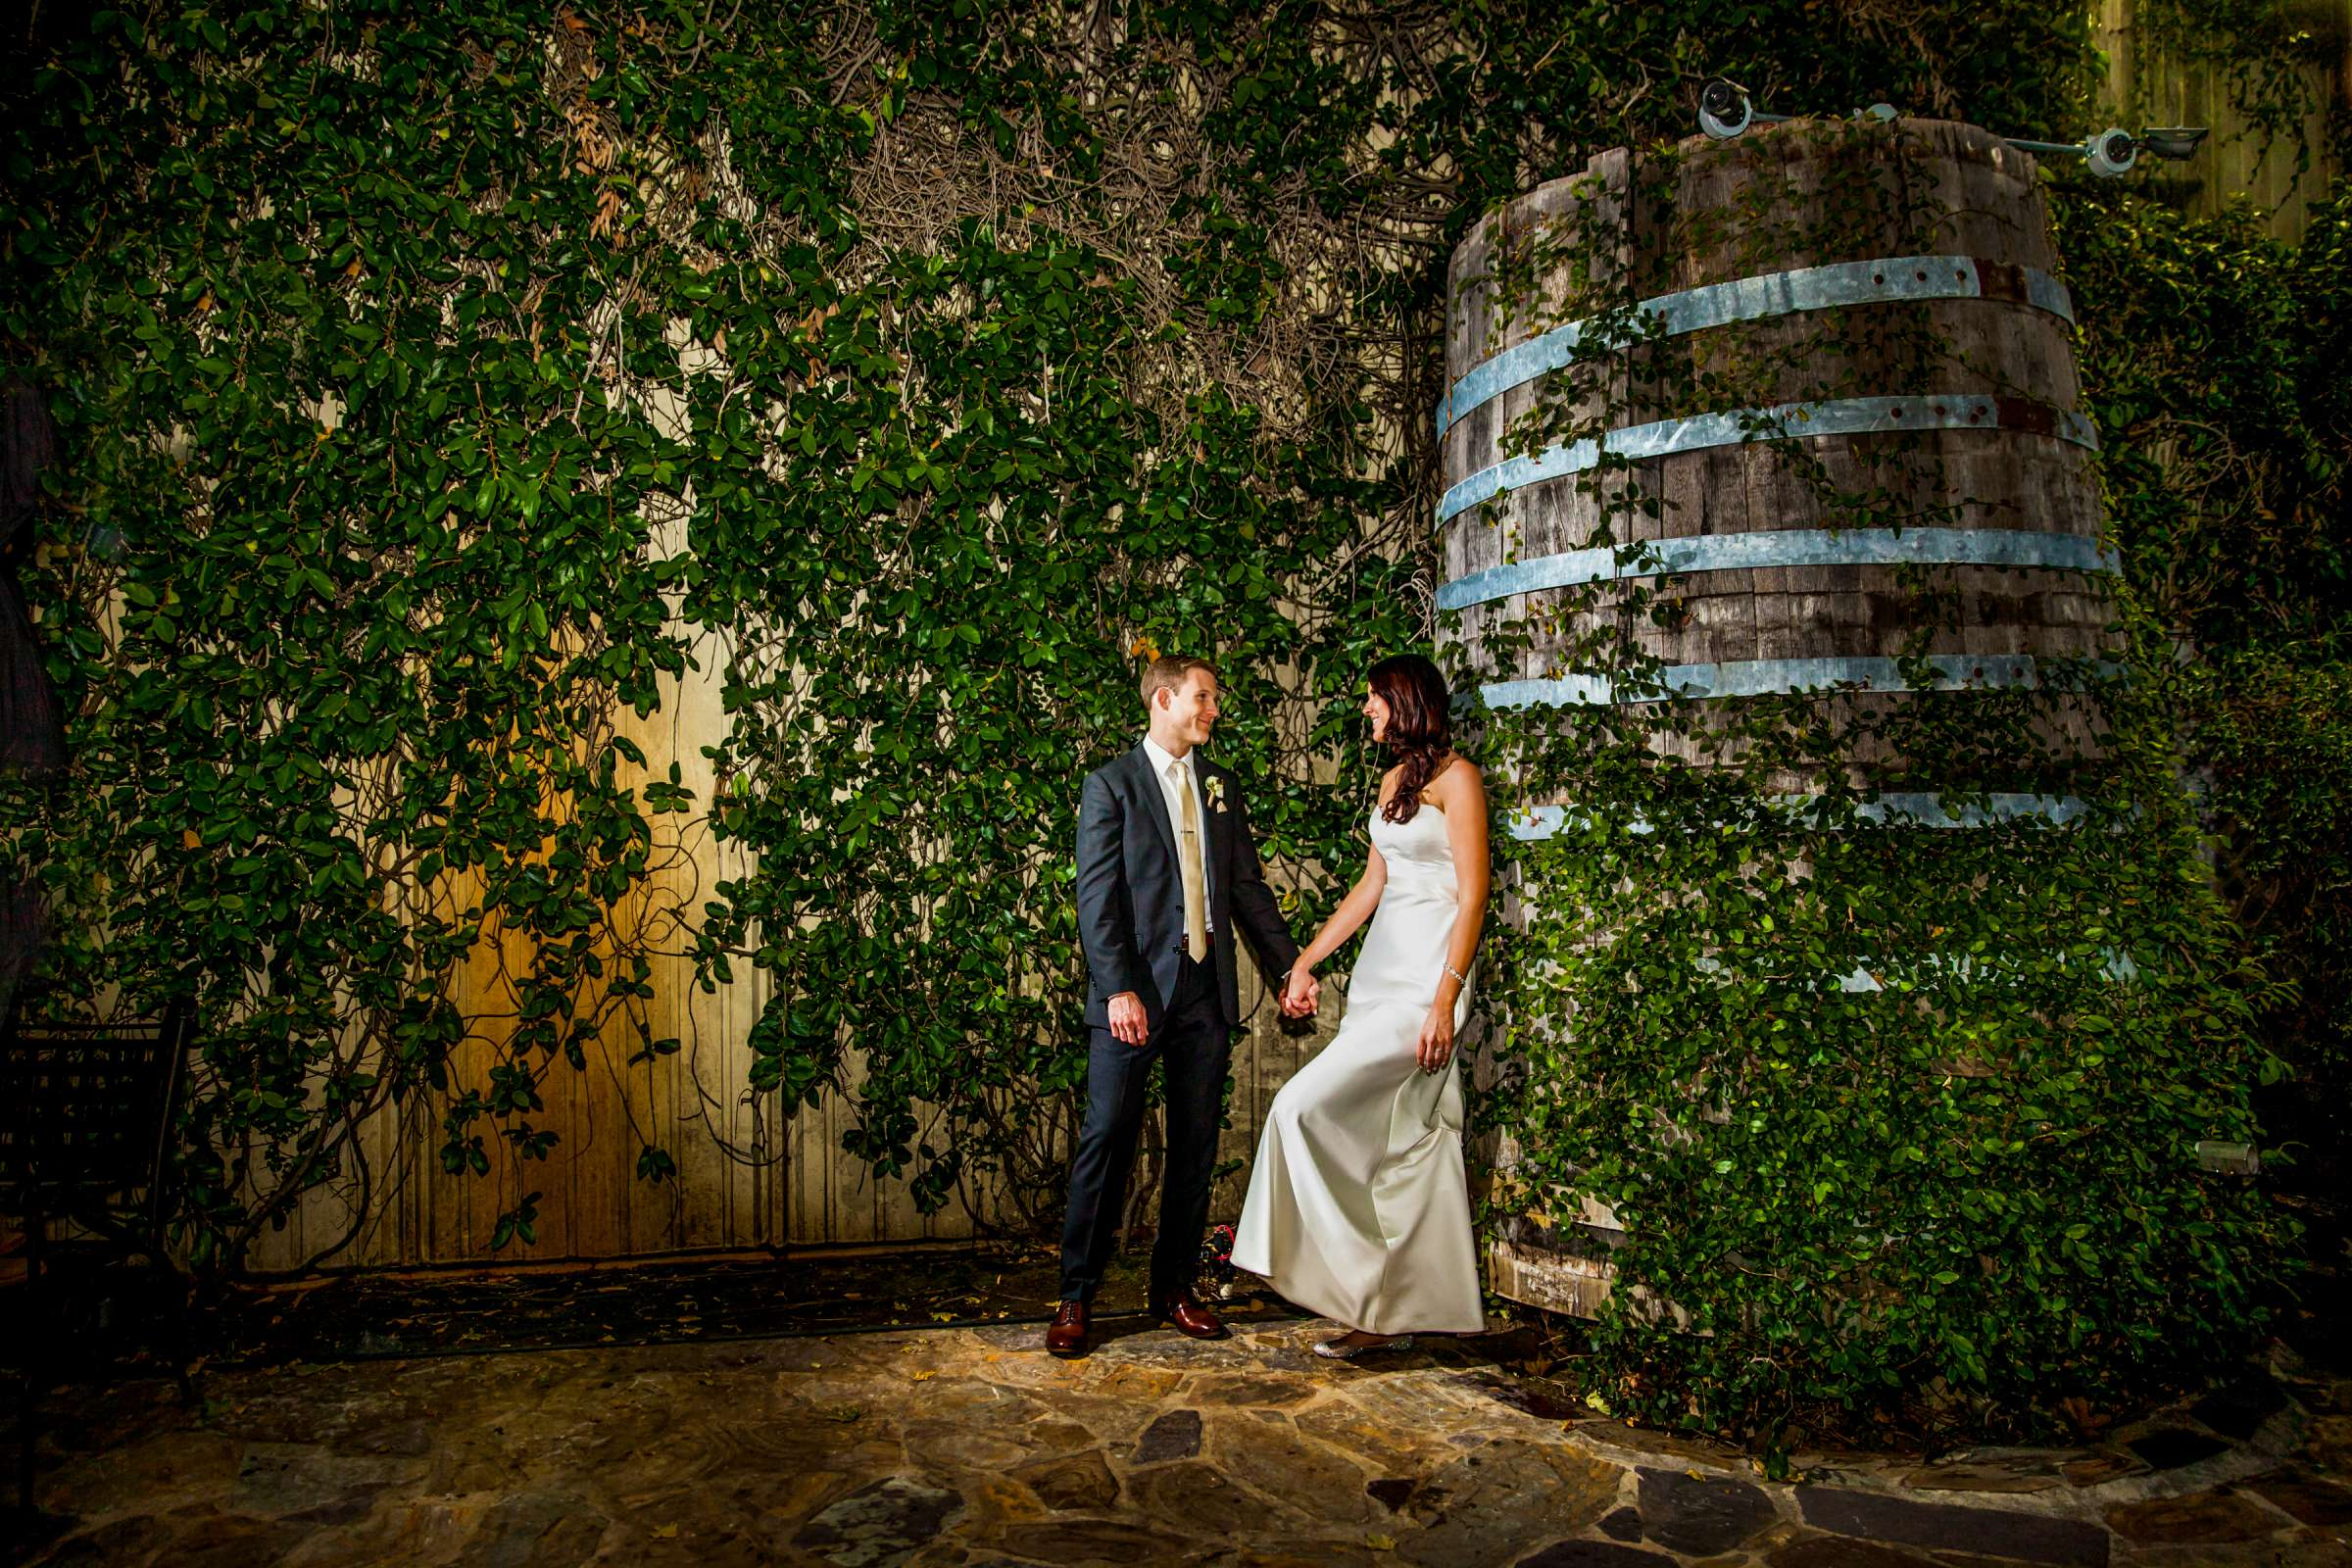 Winery, Bride and Groom at Orfila Vineyards Wedding, Brittany and Matt Wedding Photo #1 by True Photography